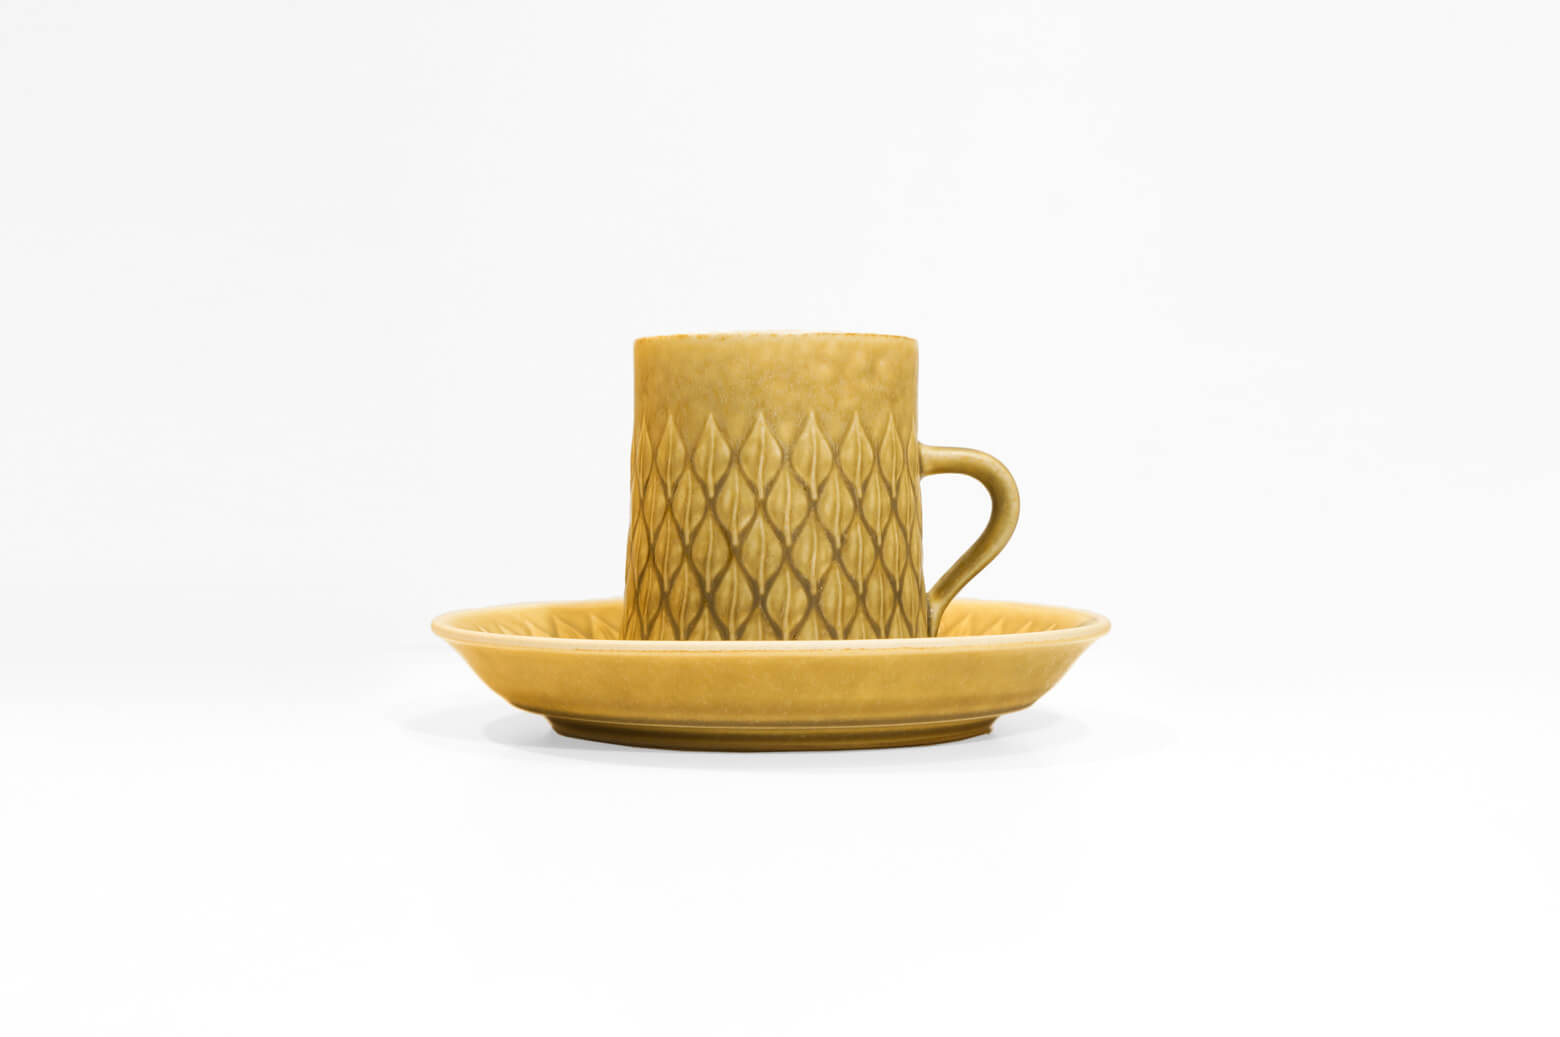 NISSEN RELIEF CUP and SAUCER / ニッセン レリーフ カップ アンド ソーサー 1